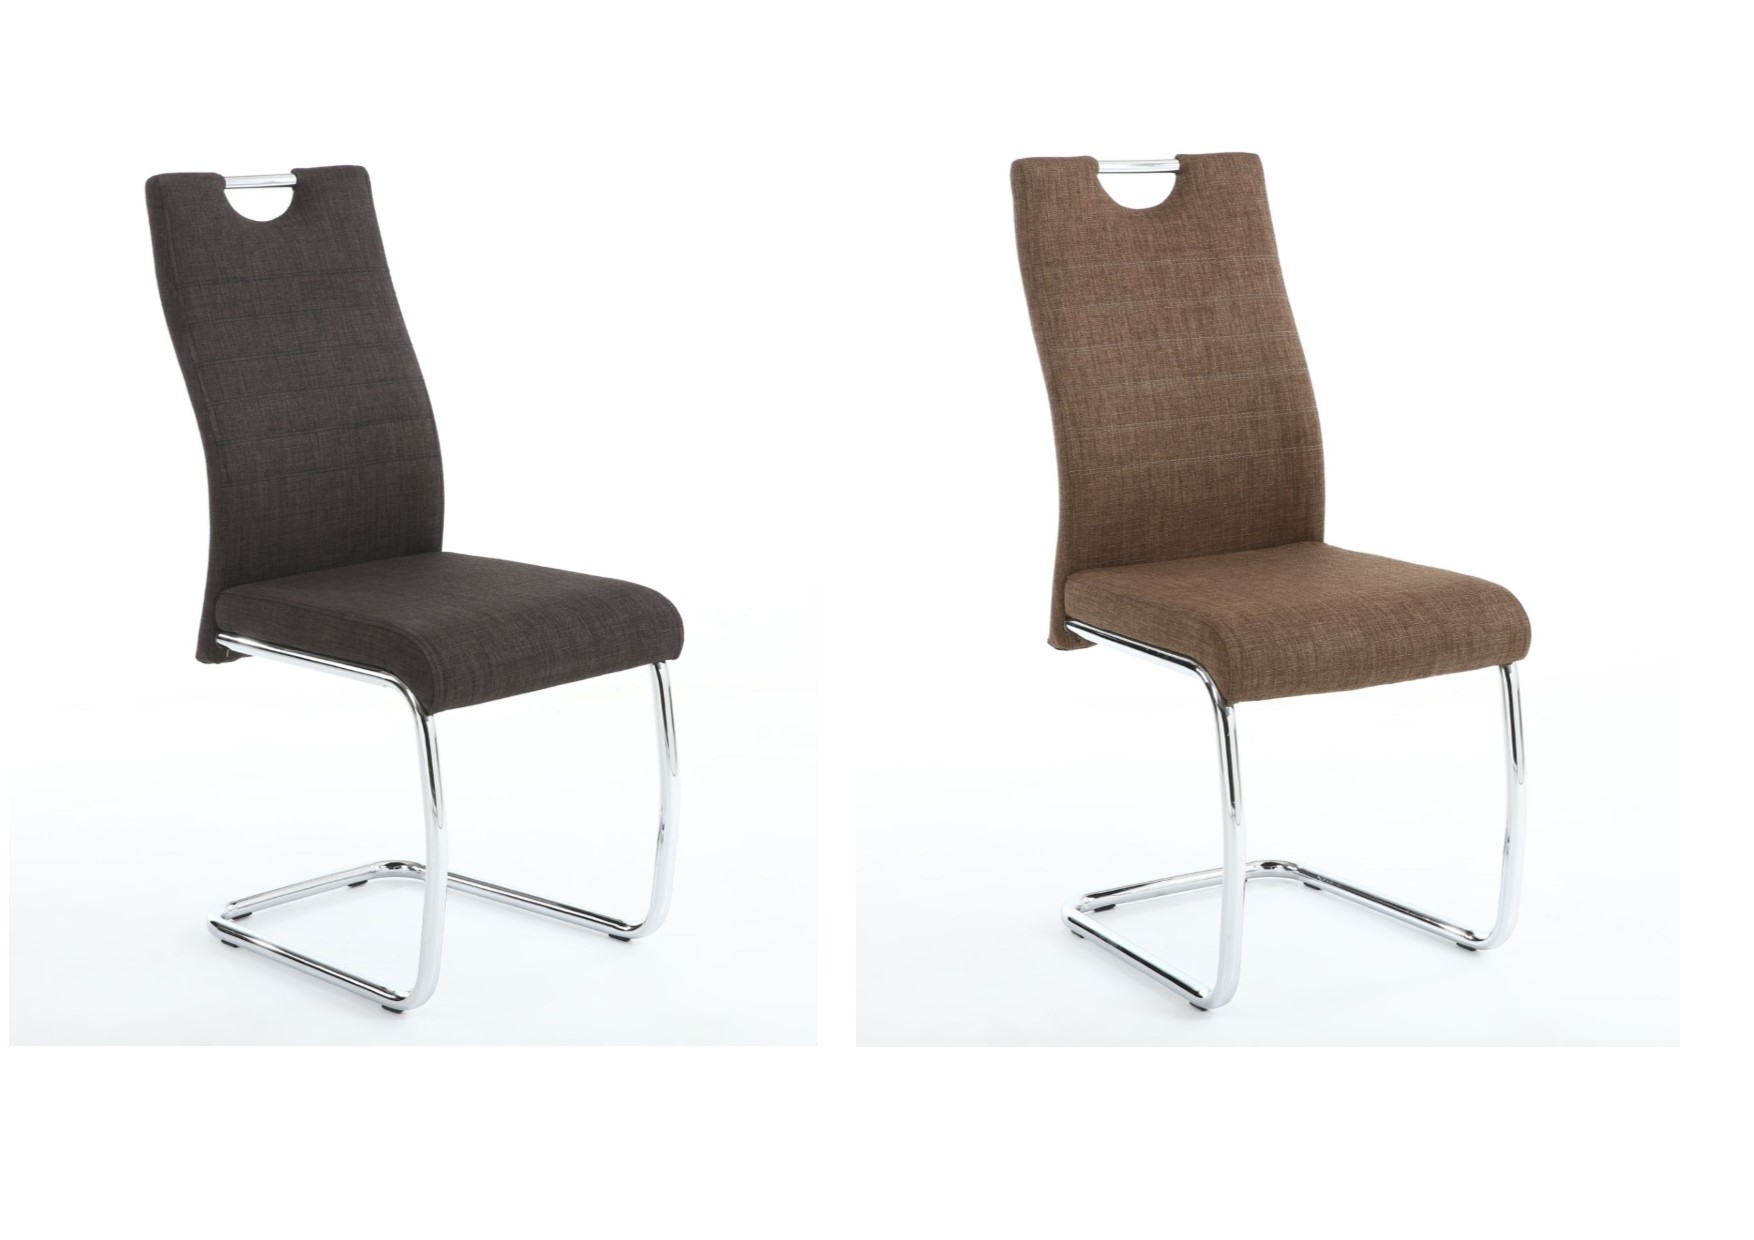 2X Talia Fabric Dining Chairs – Charcoal, Cinnamon & Cantilever In Well Liked Charcoal Dining Chairs (#2 of 20)